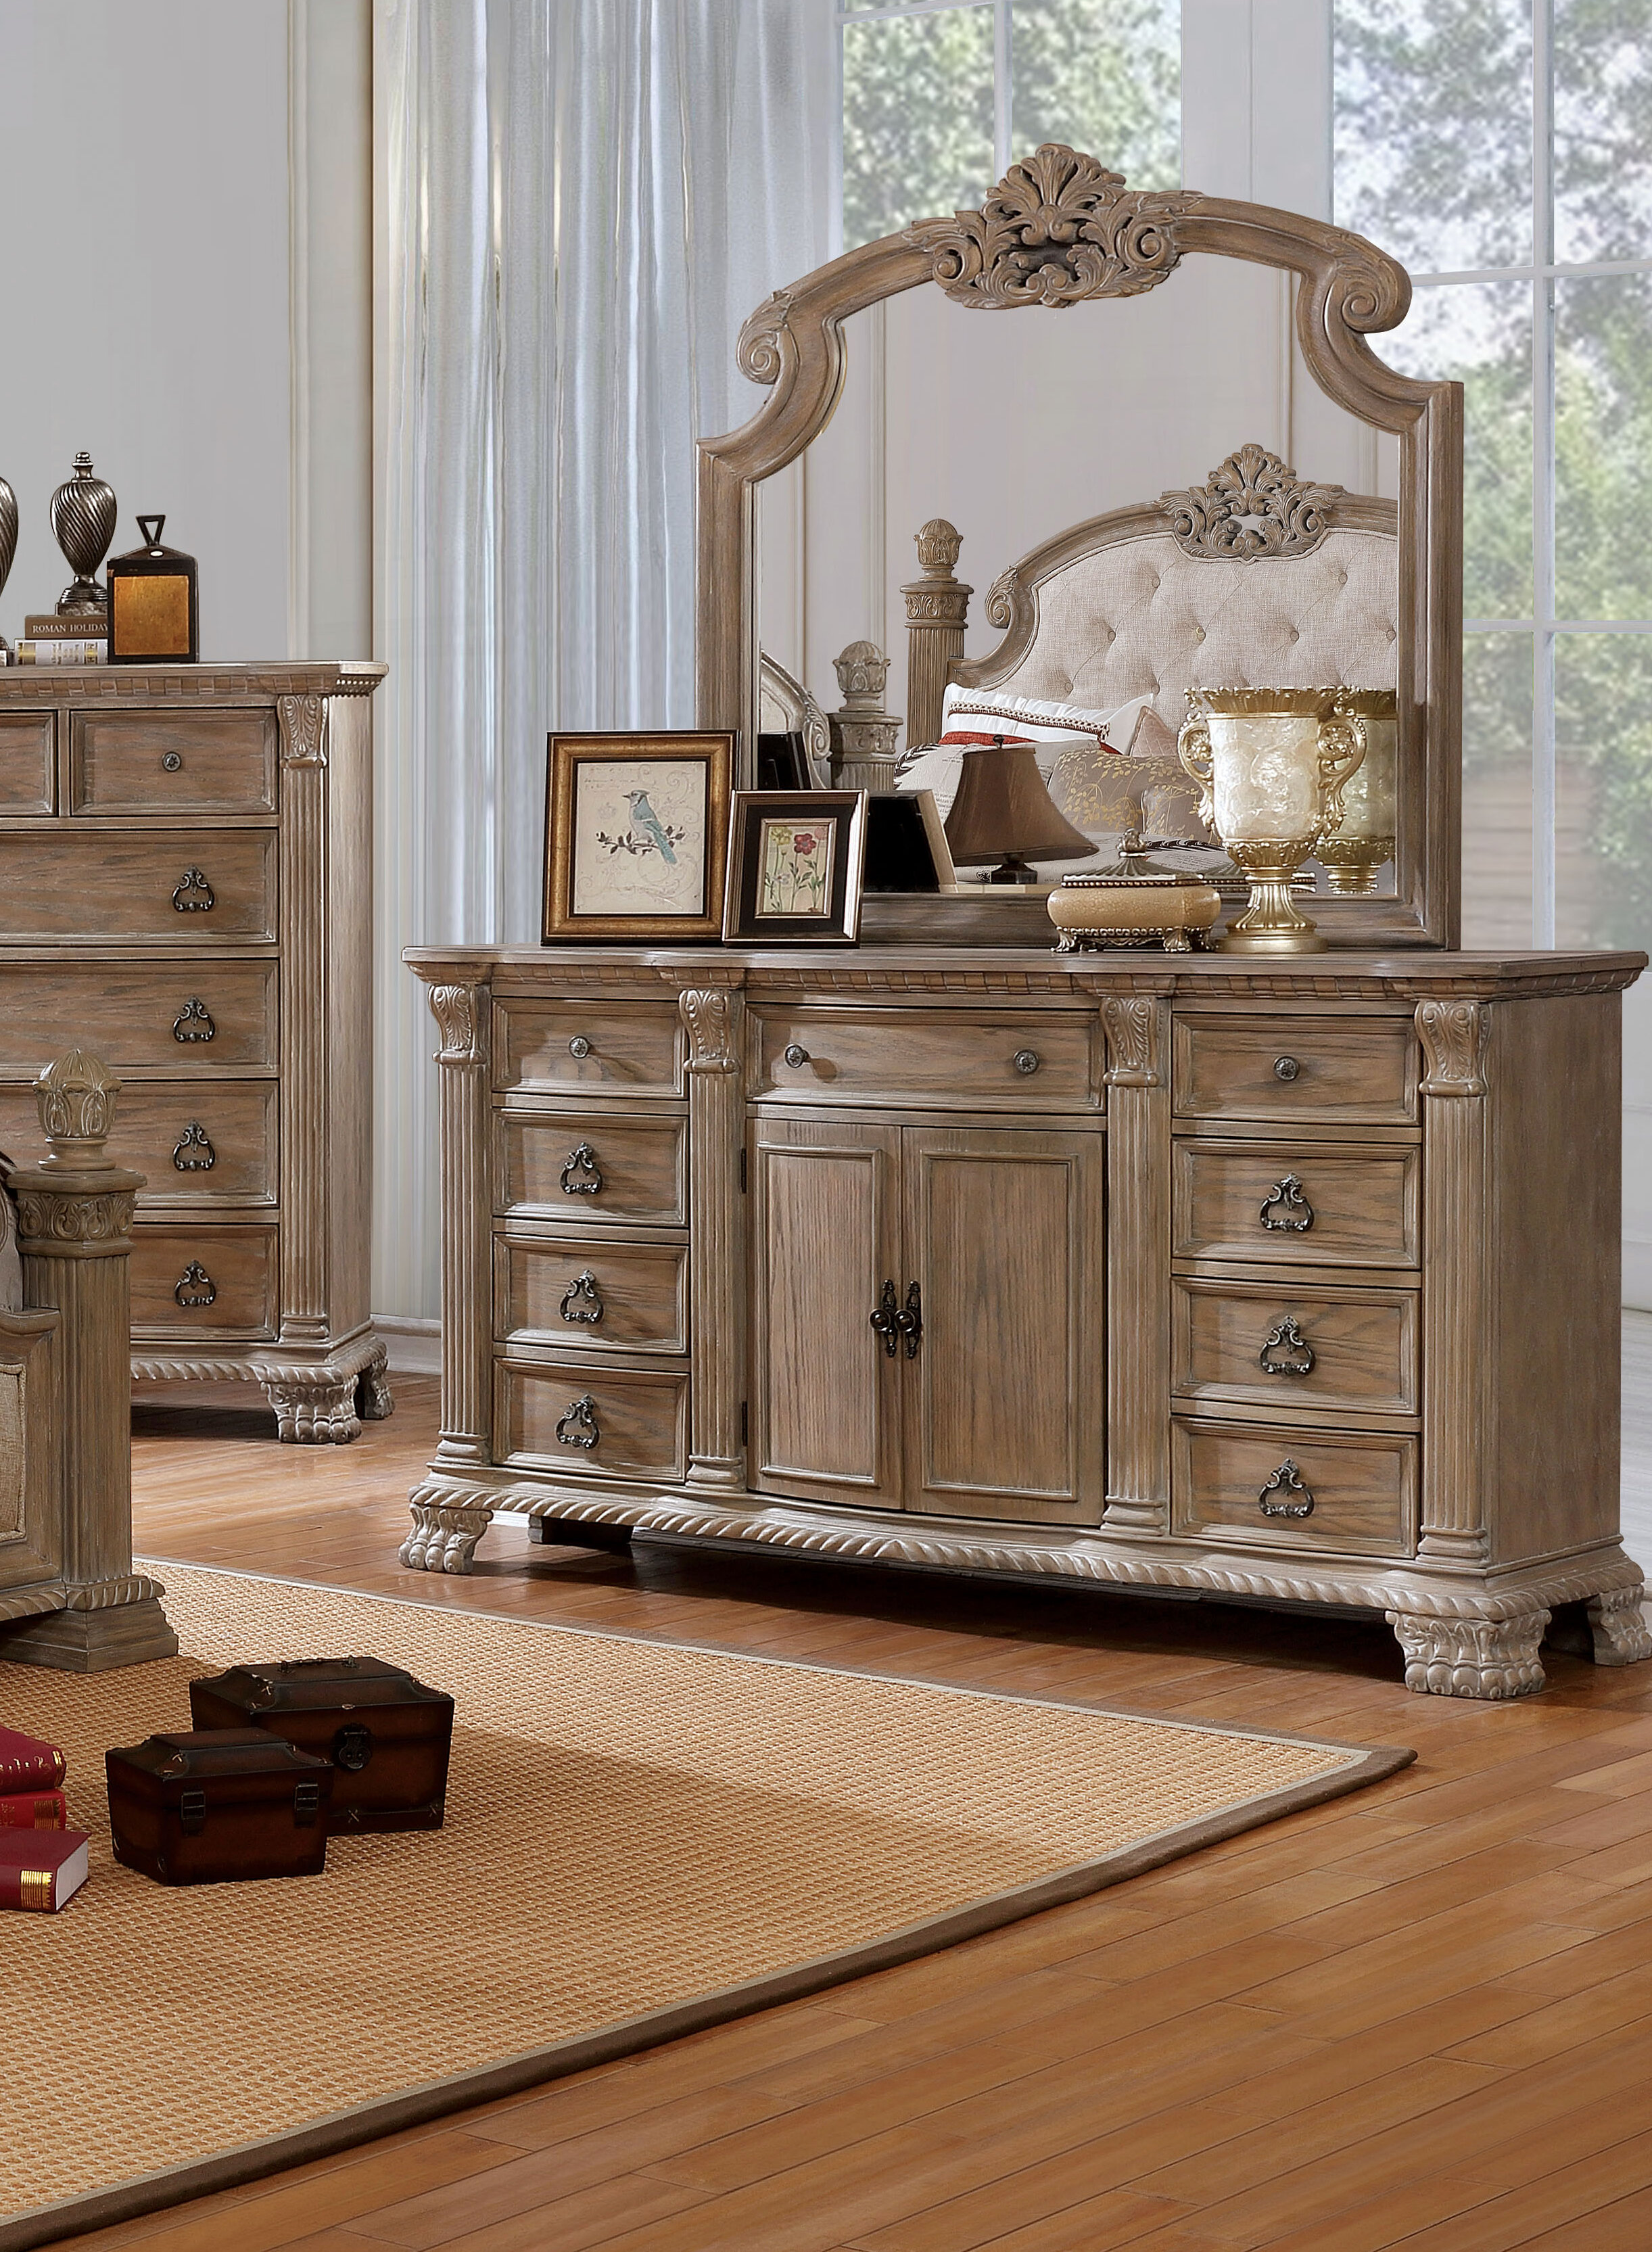 Combo Dressers Chests You Ll Love In 2021 Wayfair